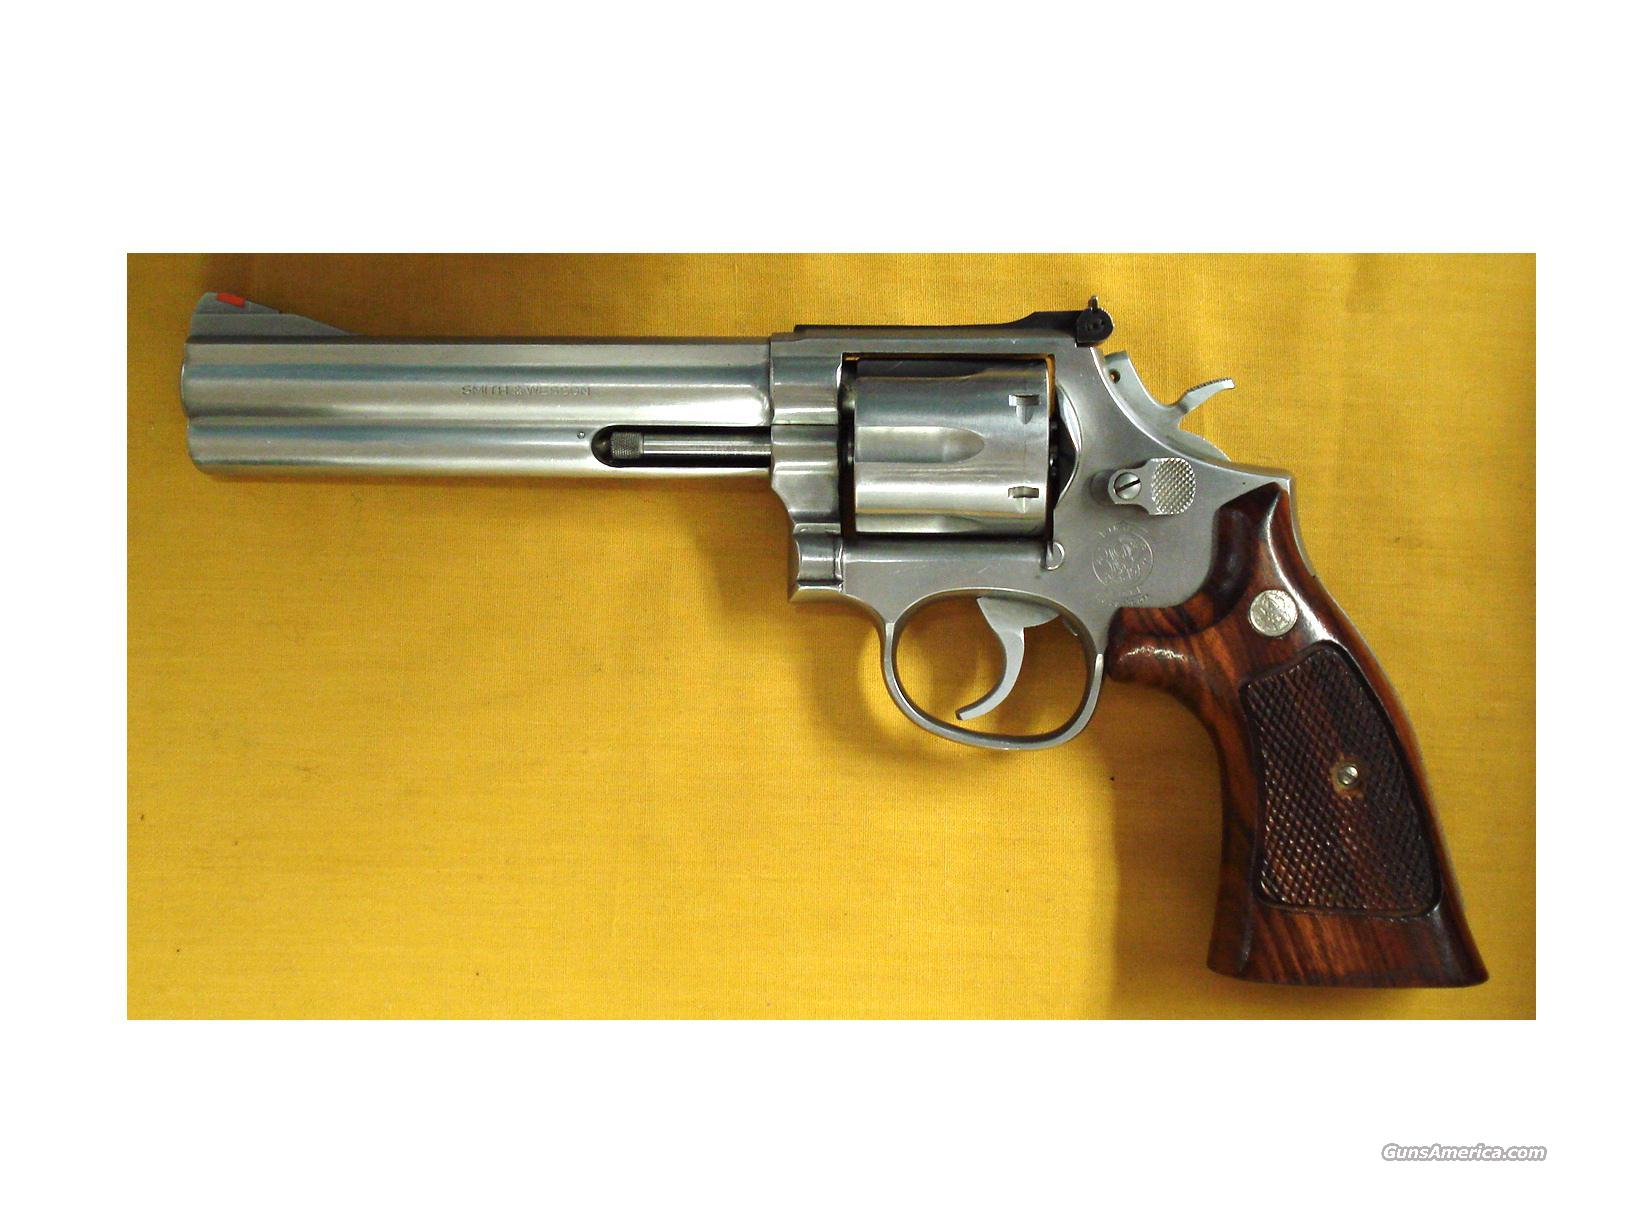 "S&W 686 .357 6"" BARREL  Guns > Pistols > Smith & Wesson Revolvers > Full Frame Revolver"